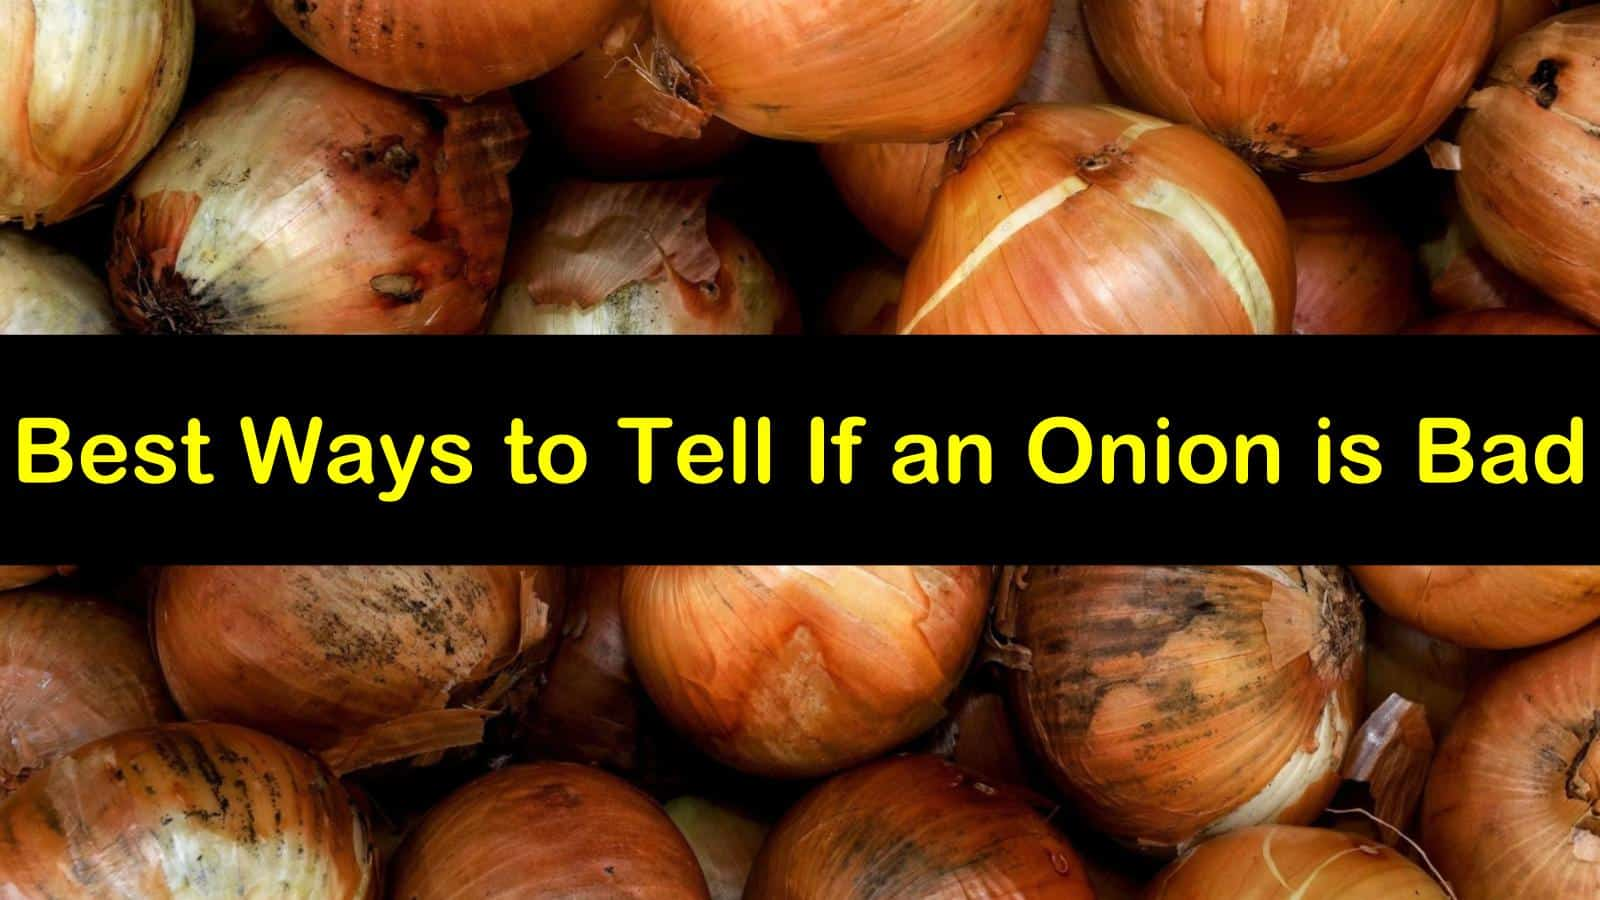 how to tell if an onion is bad titleimg1